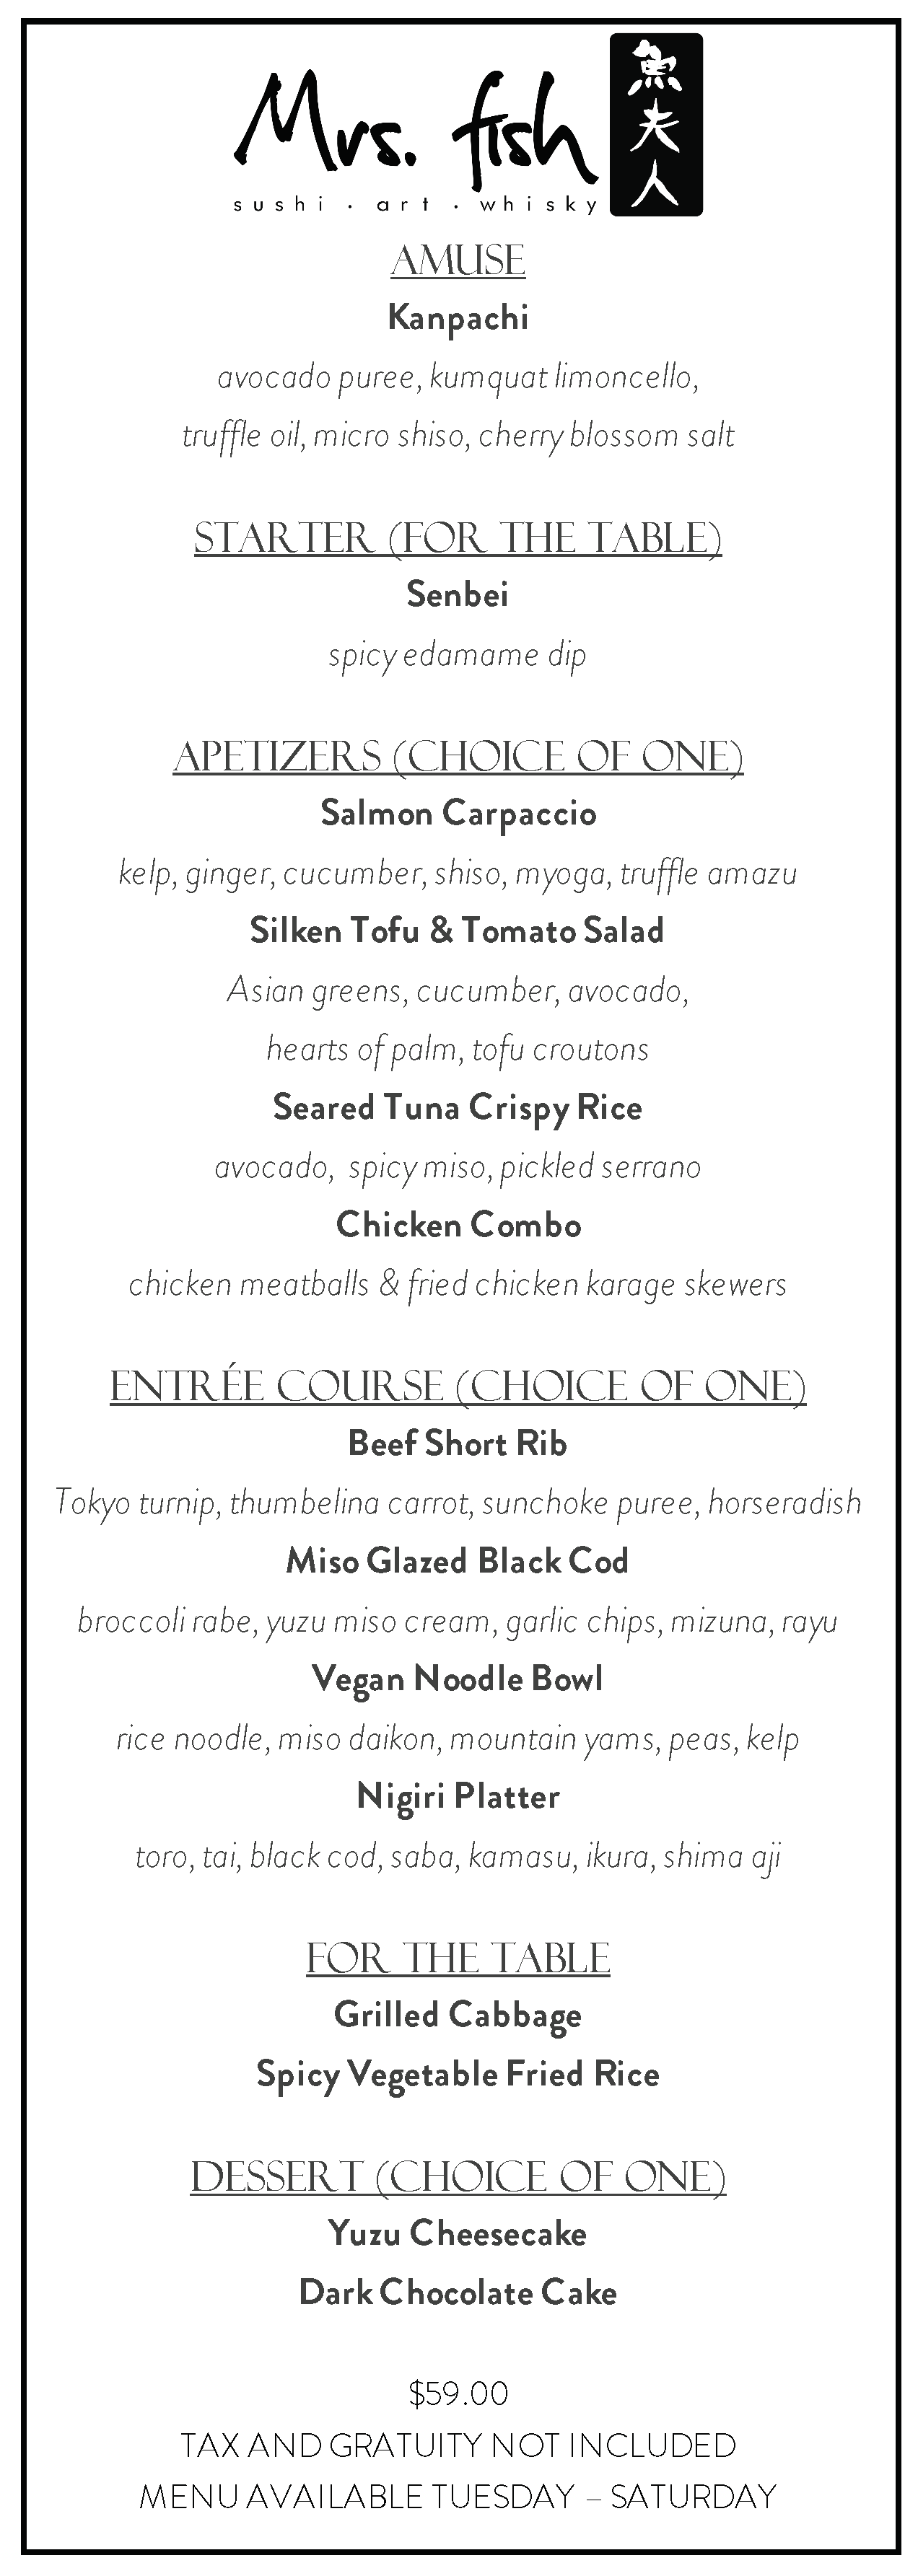 Mrs. Fish Menu April 2019 Prix Fixe.png